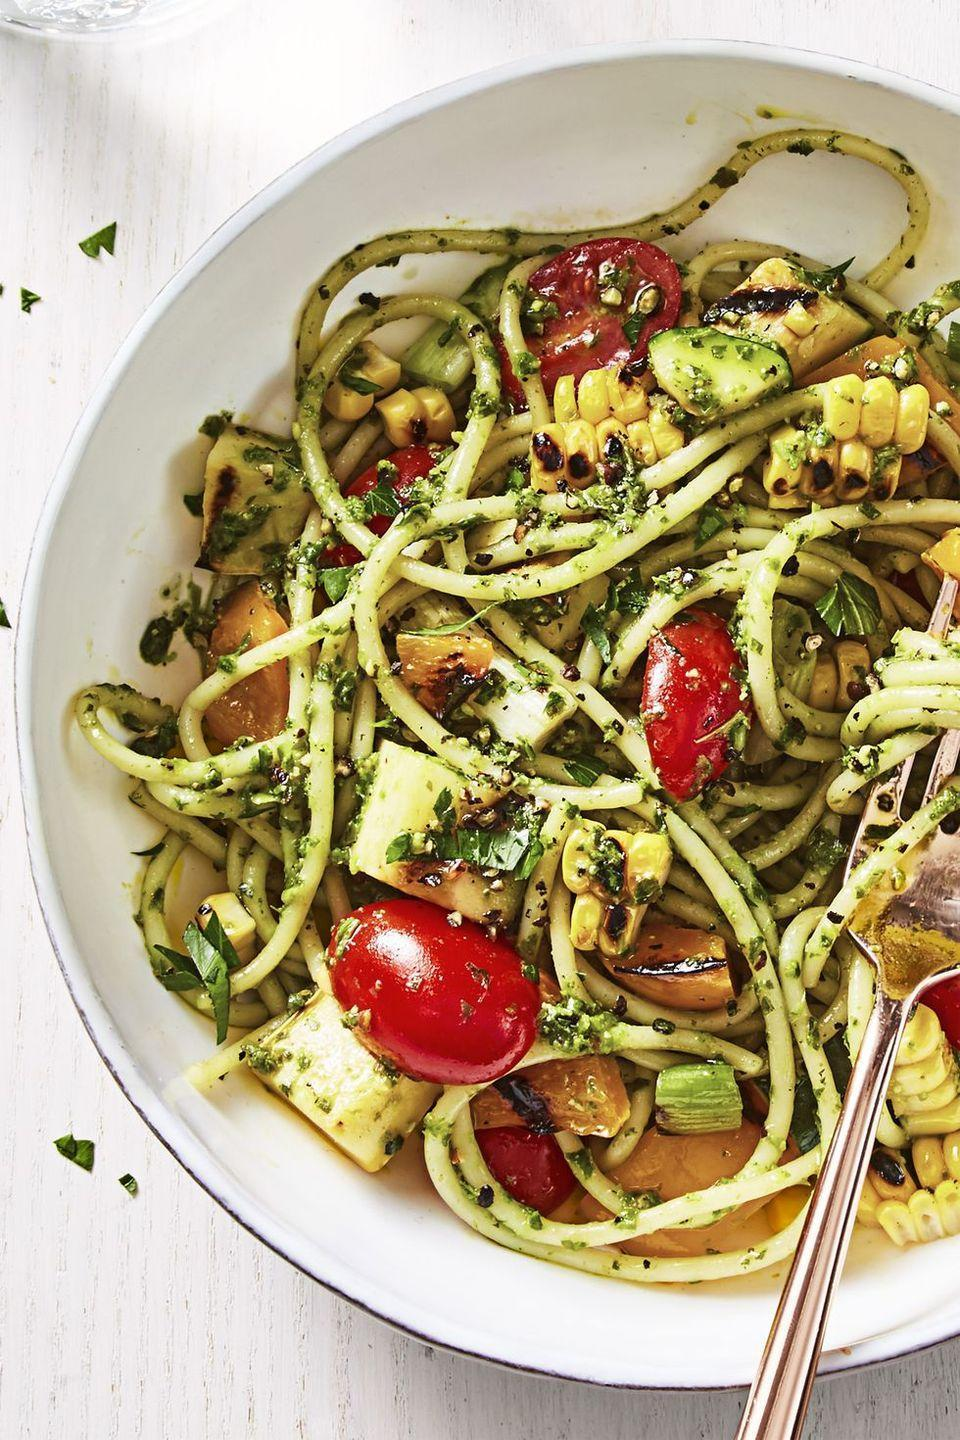 """<p>Adding an herby pesto pasta to the mix will brighten up your barbecue spread. </p><p><em><a href=""""https://www.goodhousekeeping.com/food-recipes/a44097/summer-pesto-pasta-recipe/"""" rel=""""nofollow noopener"""" target=""""_blank"""" data-ylk=""""slk:Get the recipe for Summer Pesto Pasta »"""" class=""""link rapid-noclick-resp"""">Get the recipe for Summer Pesto Pasta »</a></em></p>"""